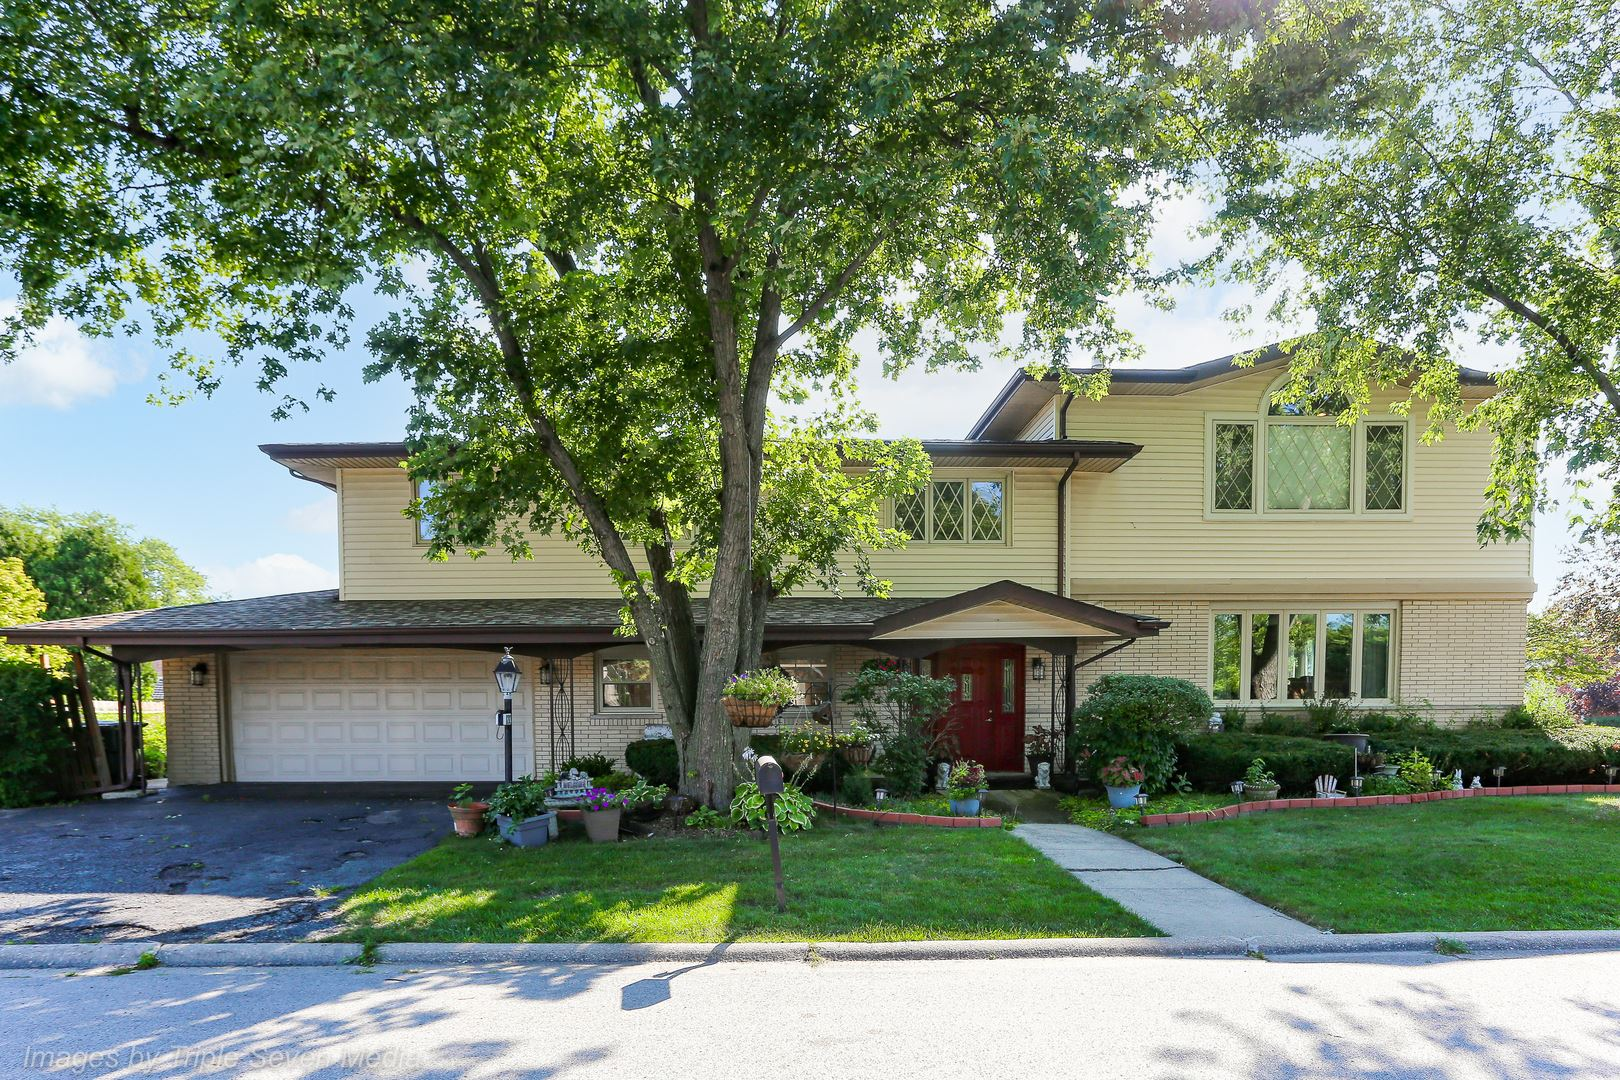 6262 W 129th Place, Palos Heights, IL 60463 - #: 11249088